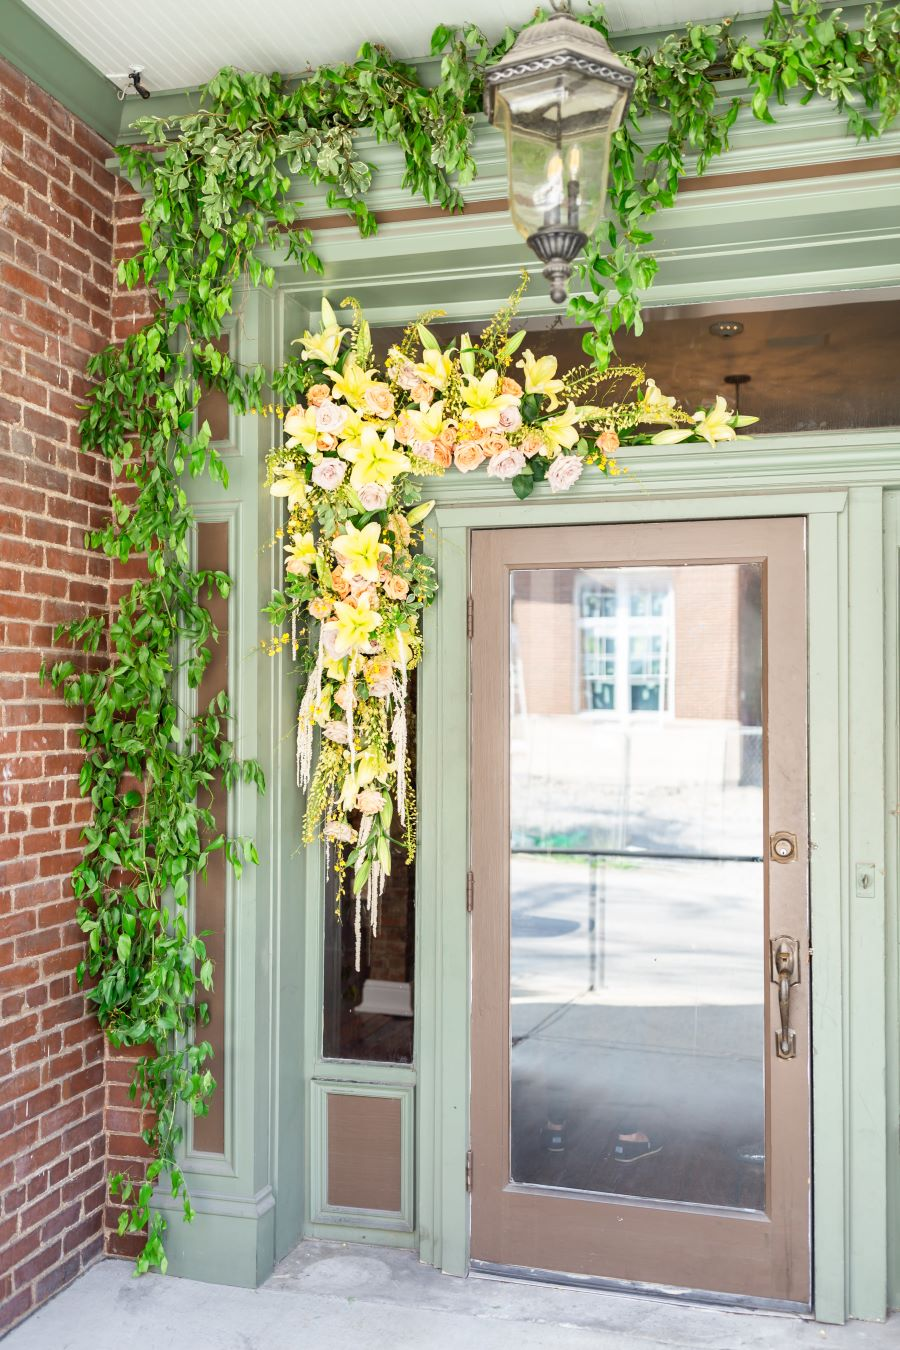 Floral arrangement garnishing door as welcome to McConnell House for tasting party / Whimsical / Summer / August / Yellow / Lavender / Blush